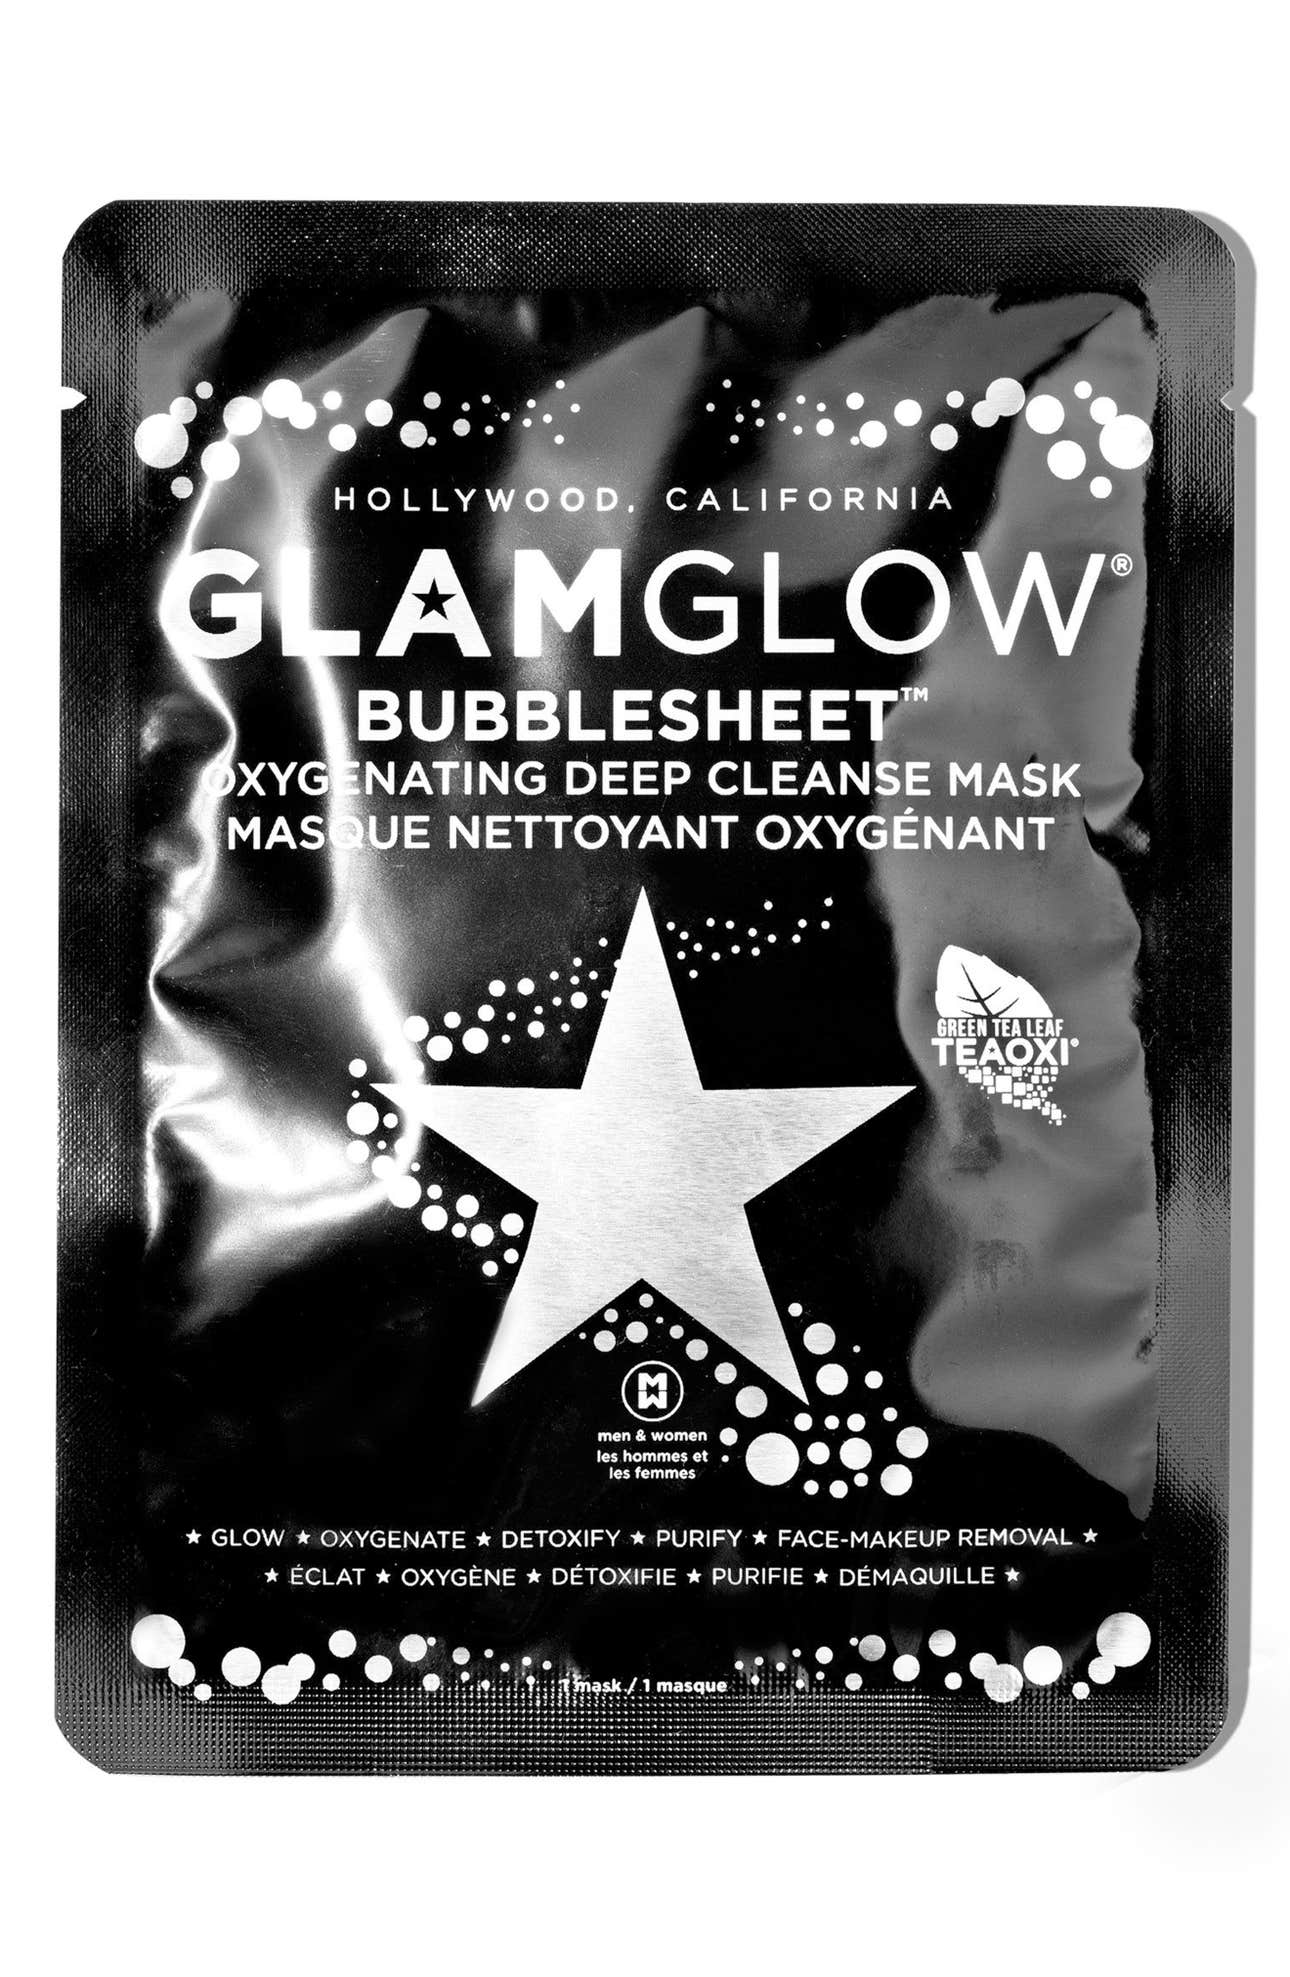 GLAMGLOW® BUBBLESHEET™ Oxygenating Deep Cleanse Mask